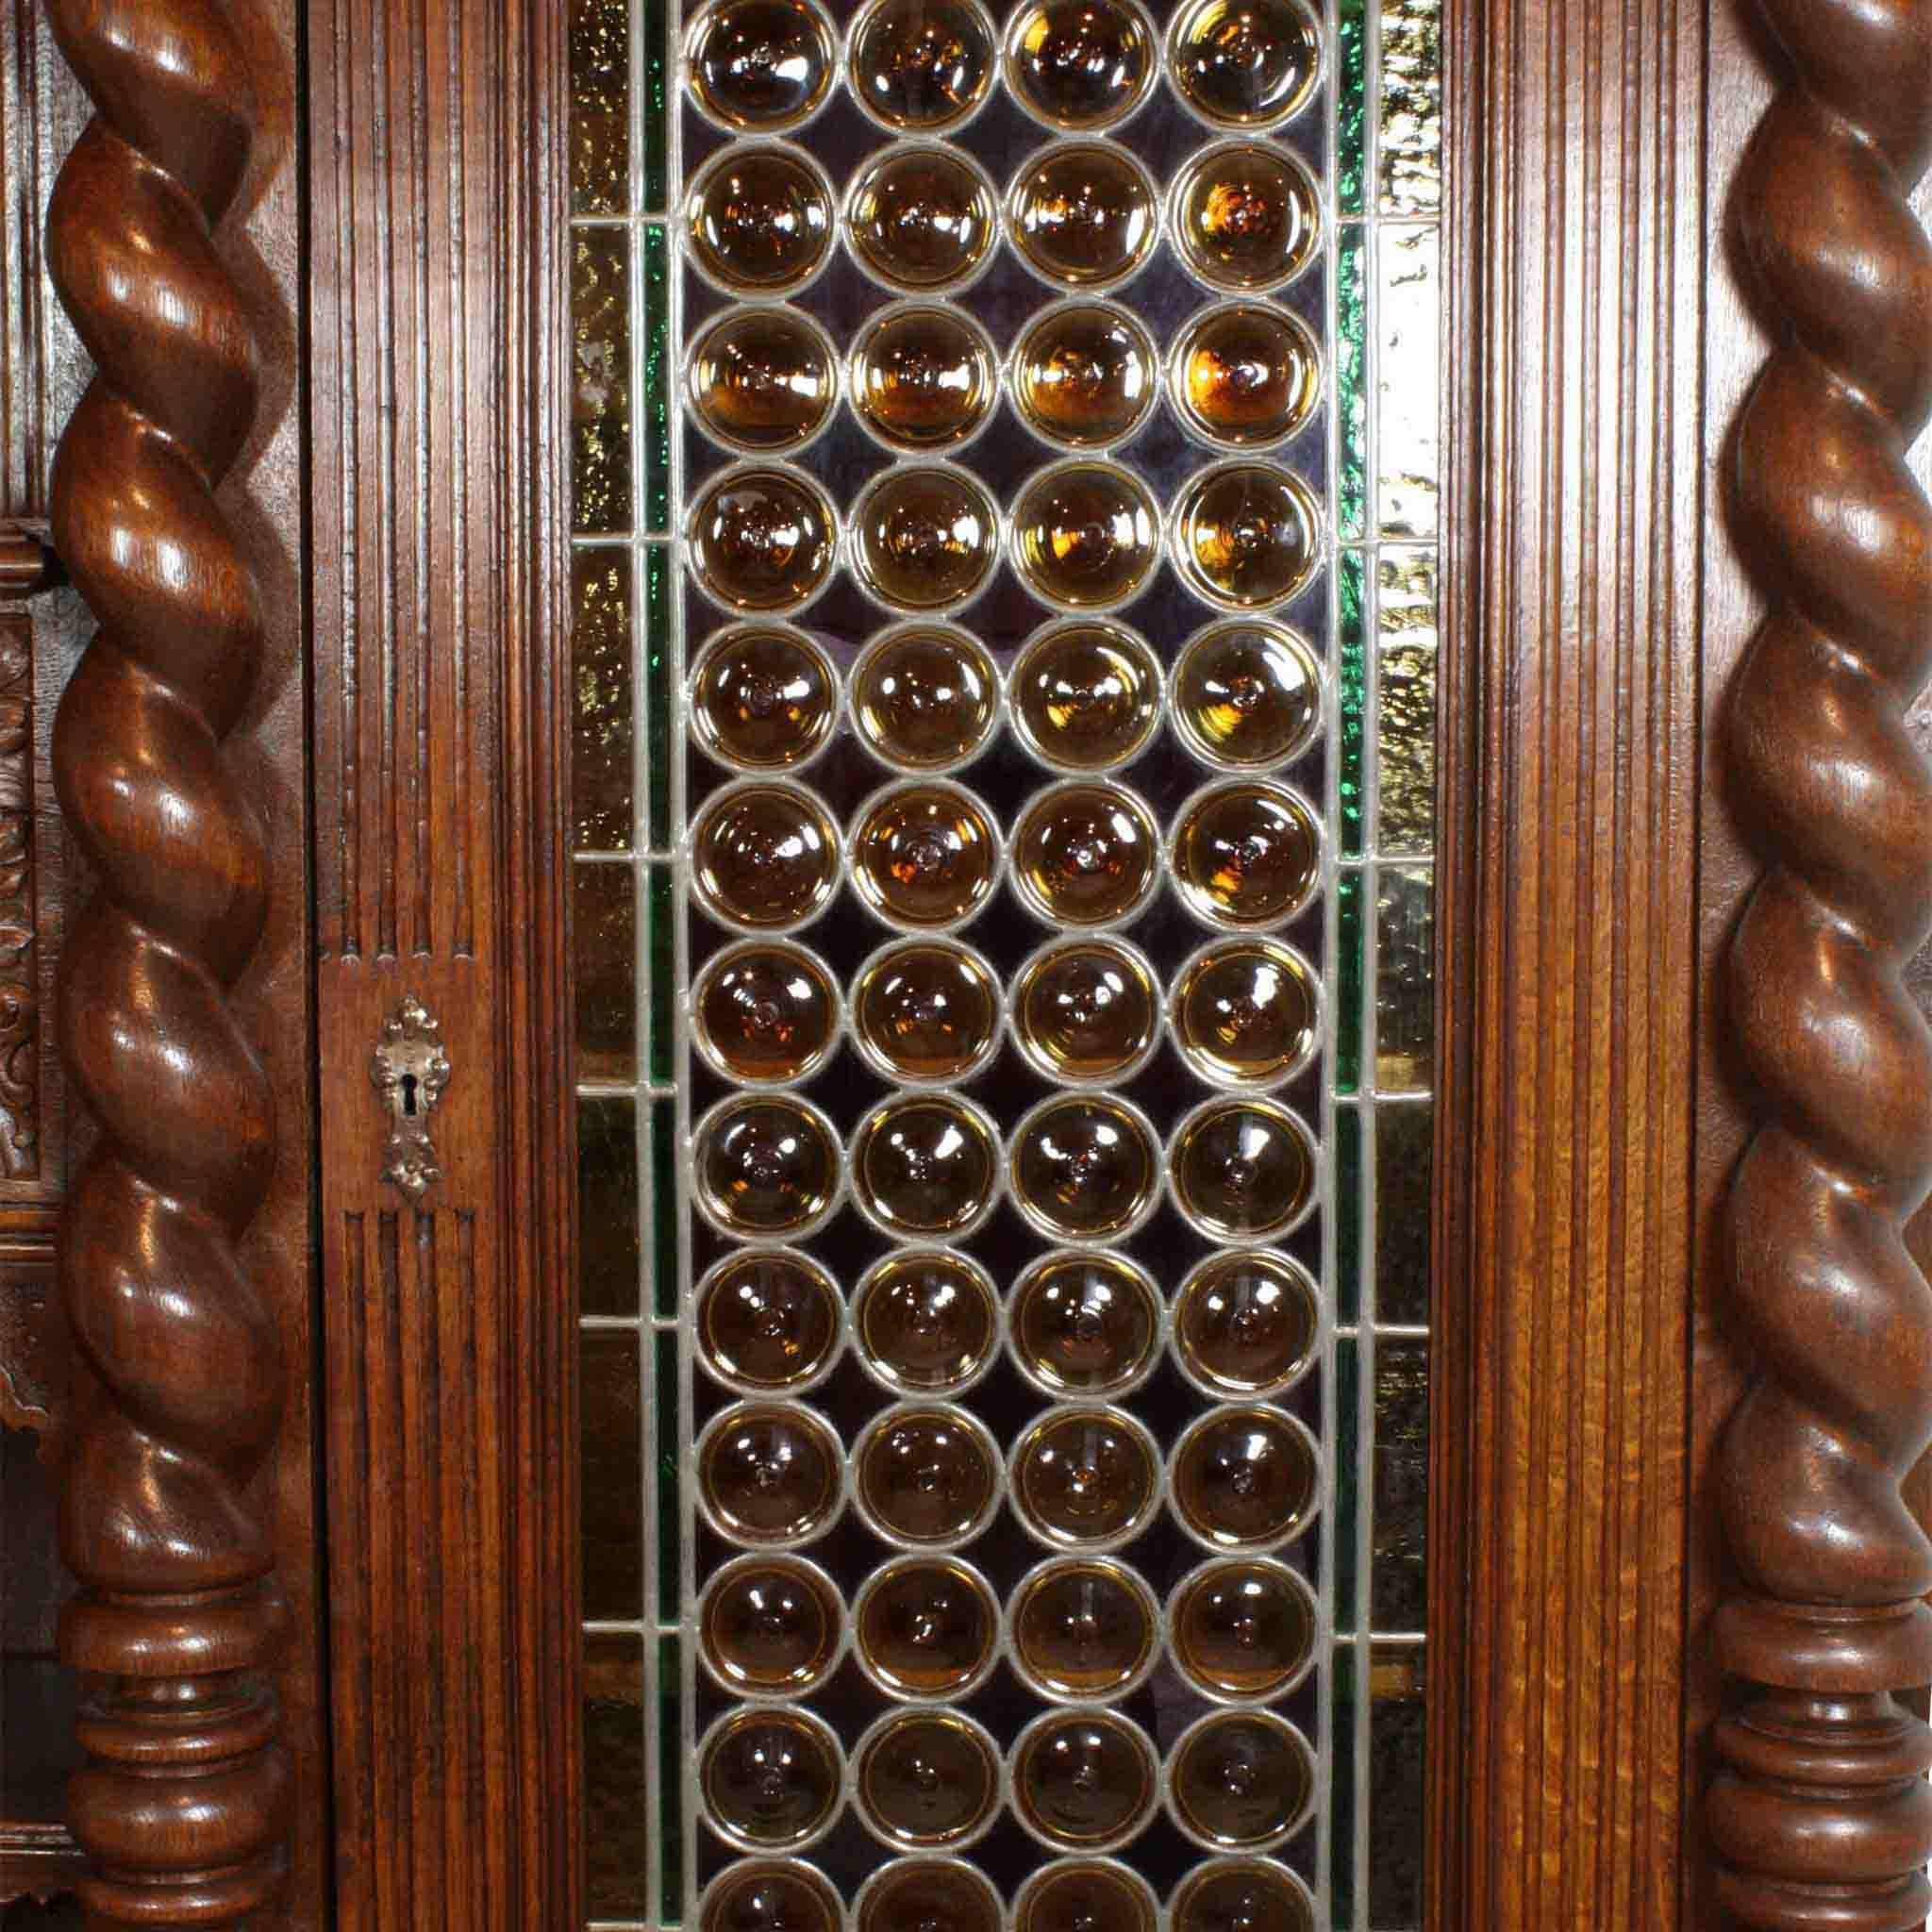 Renaissance Style Book Case with Leaded Glass Door (1stdibs) & Renaissance Style Book Case with Leaded Glass Door (1stdibs) - Ski ...